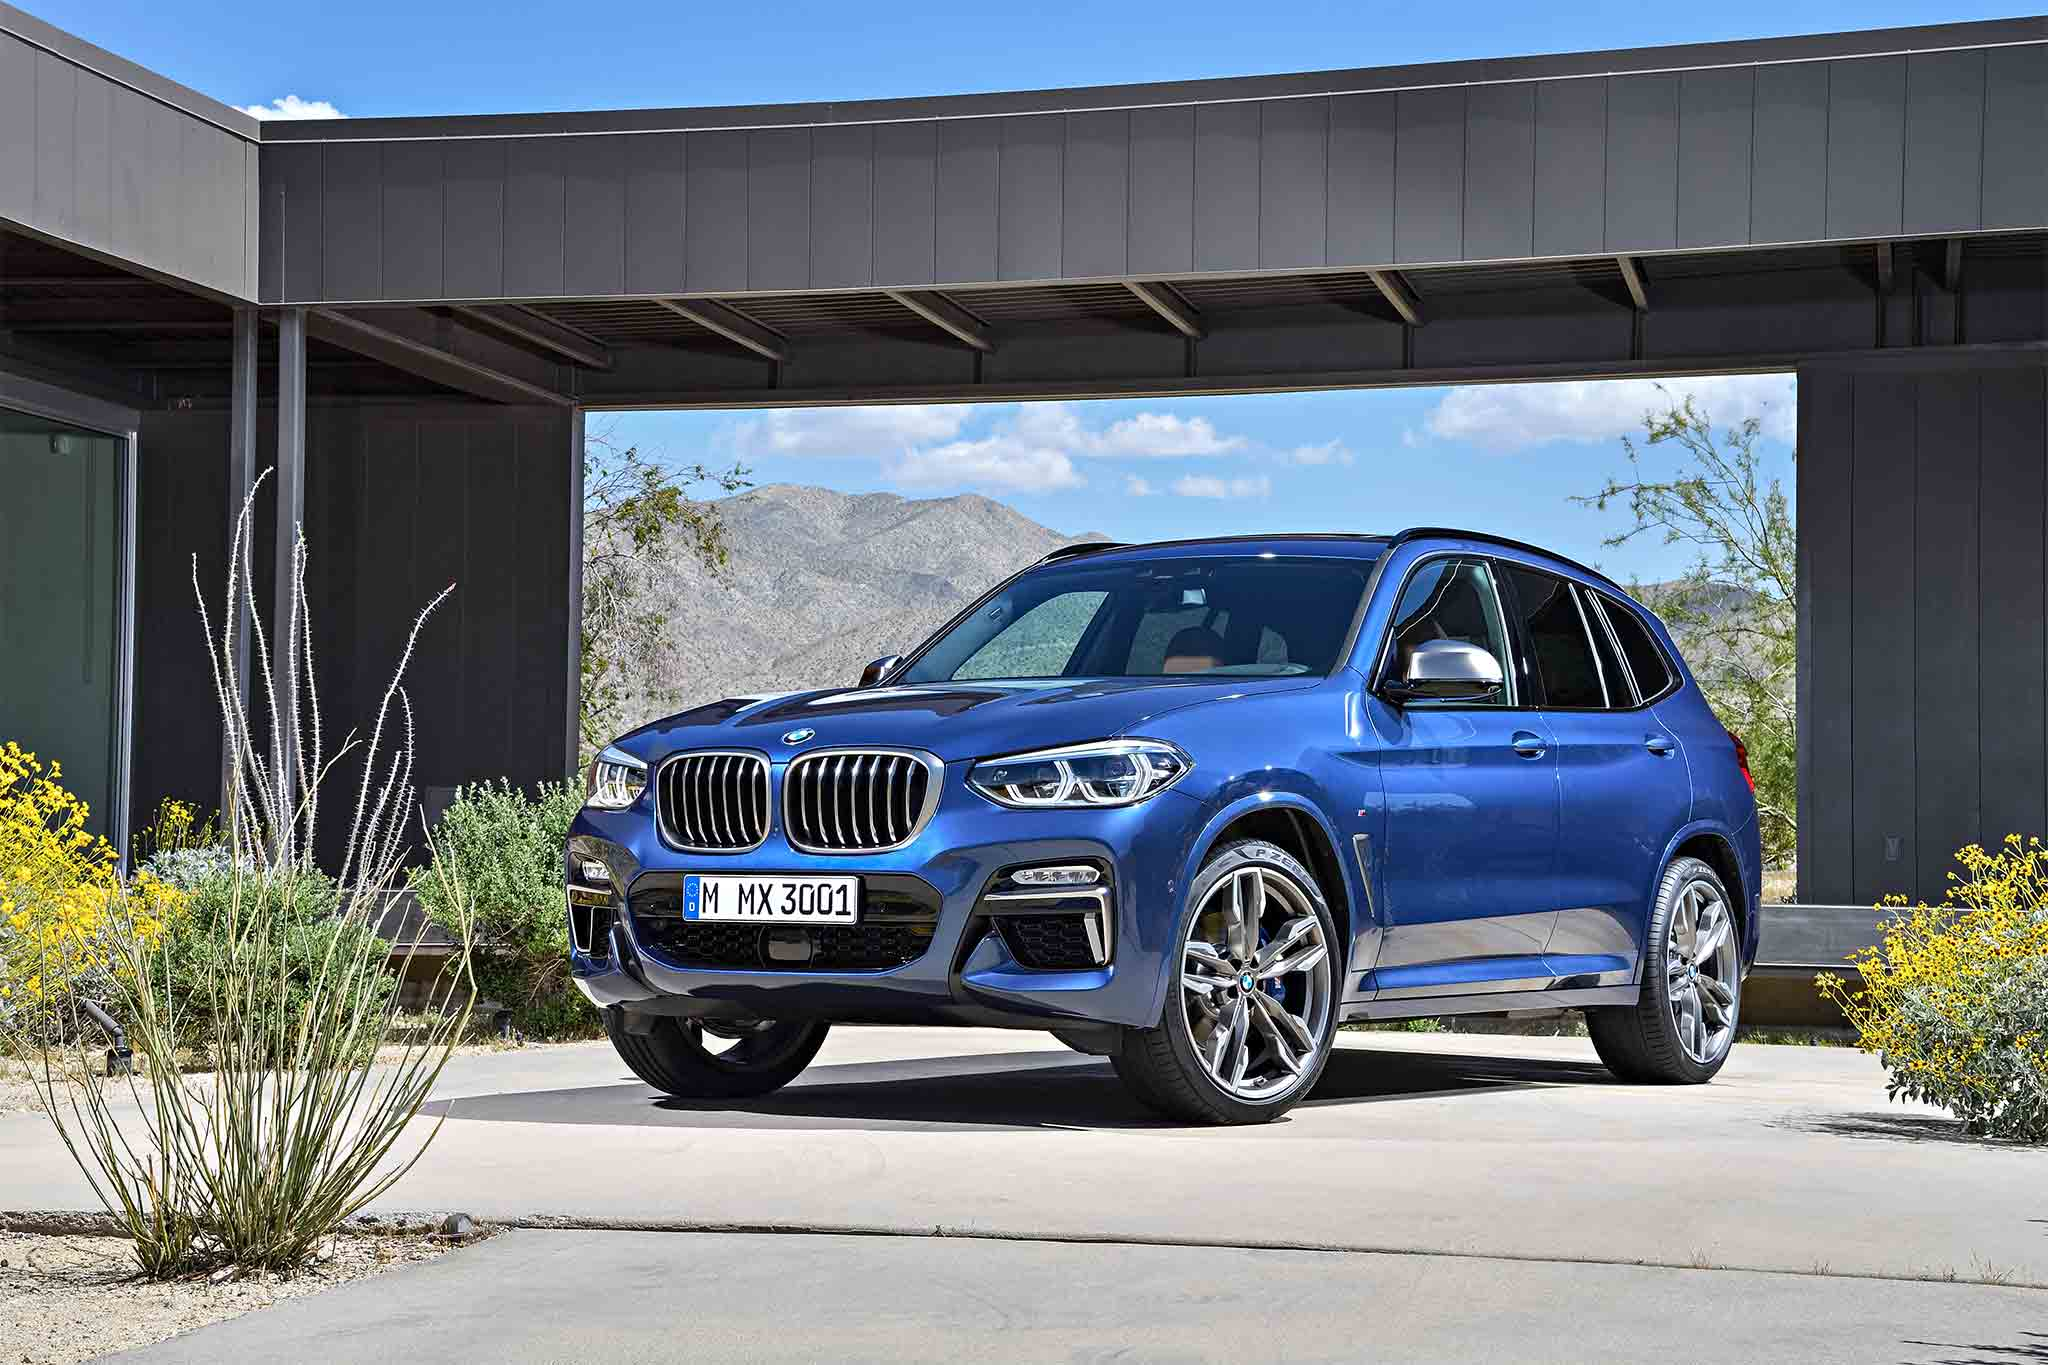 2018 bmw x3 revealed with performance oriented m40i trim automobile magazine. Black Bedroom Furniture Sets. Home Design Ideas